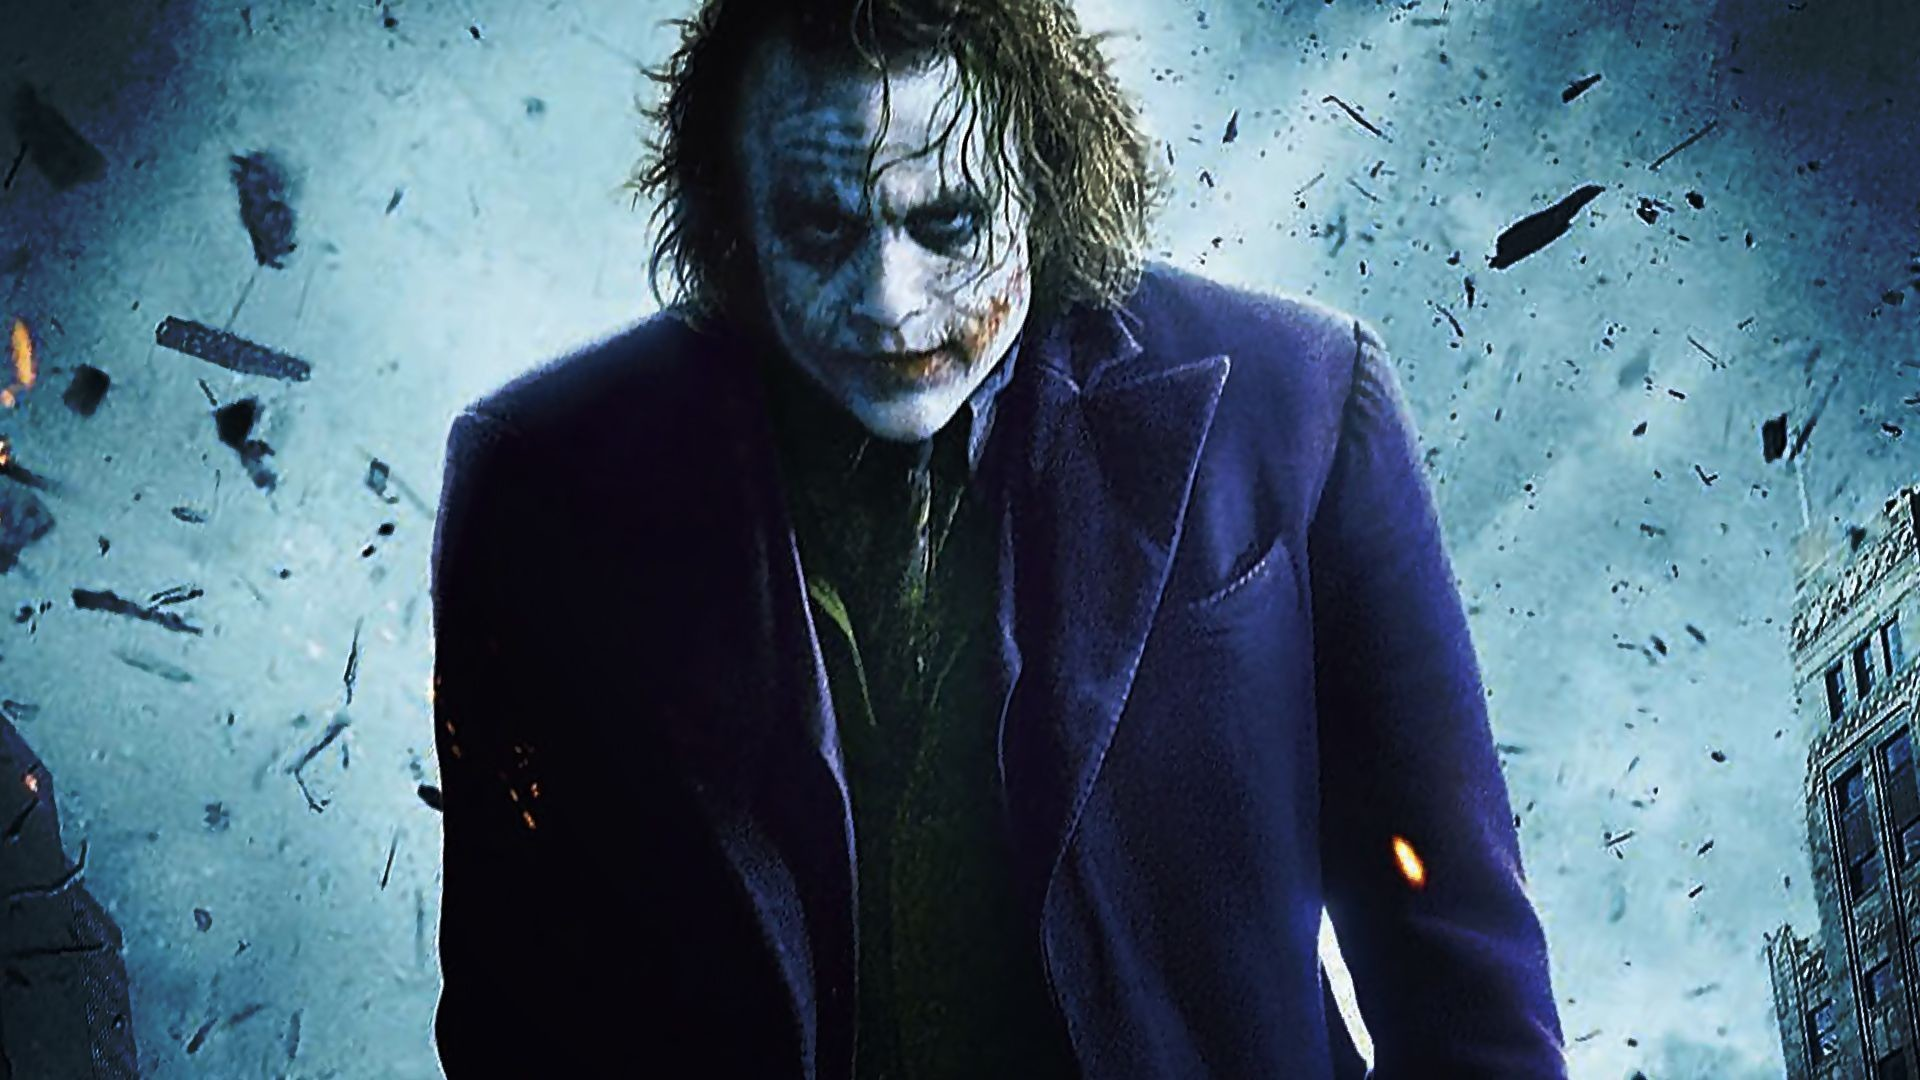 Joker Wallpaper Dark Knight HD Wallpaper Background